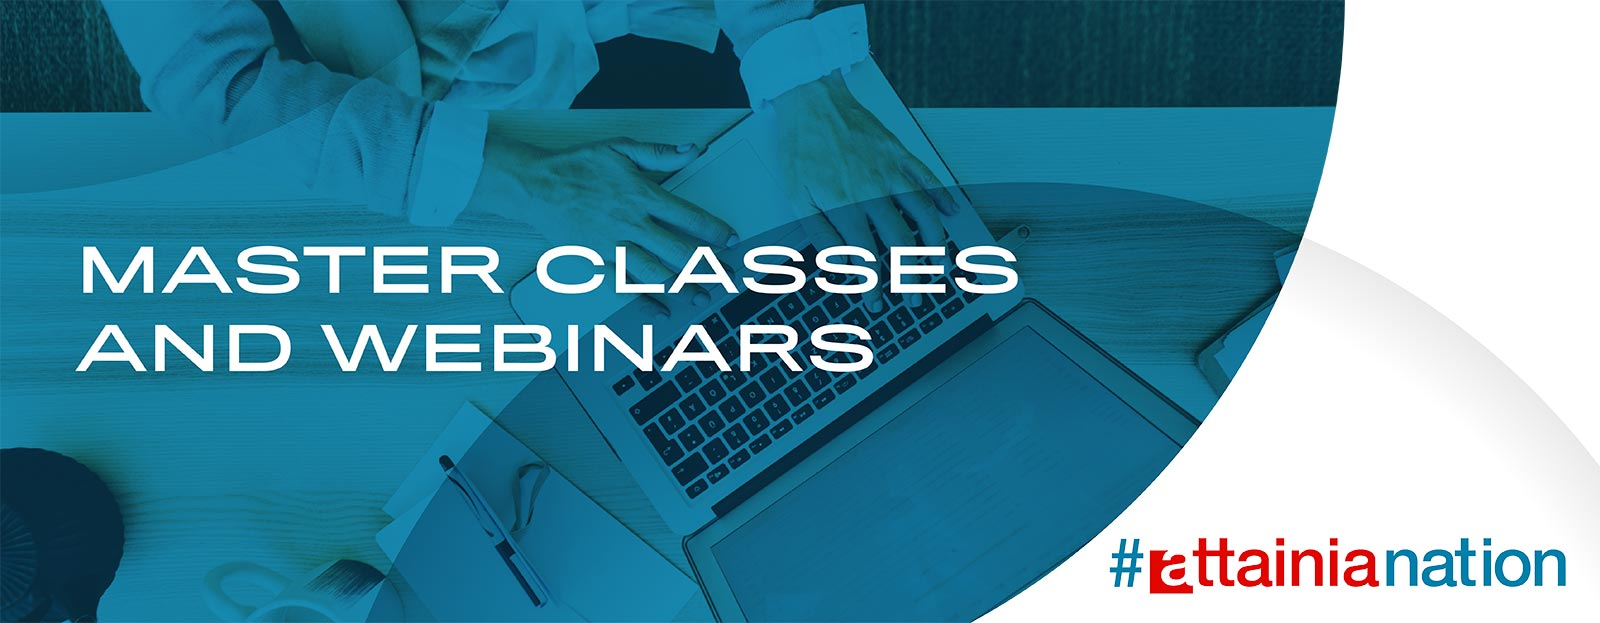 Master Classes and Webinars